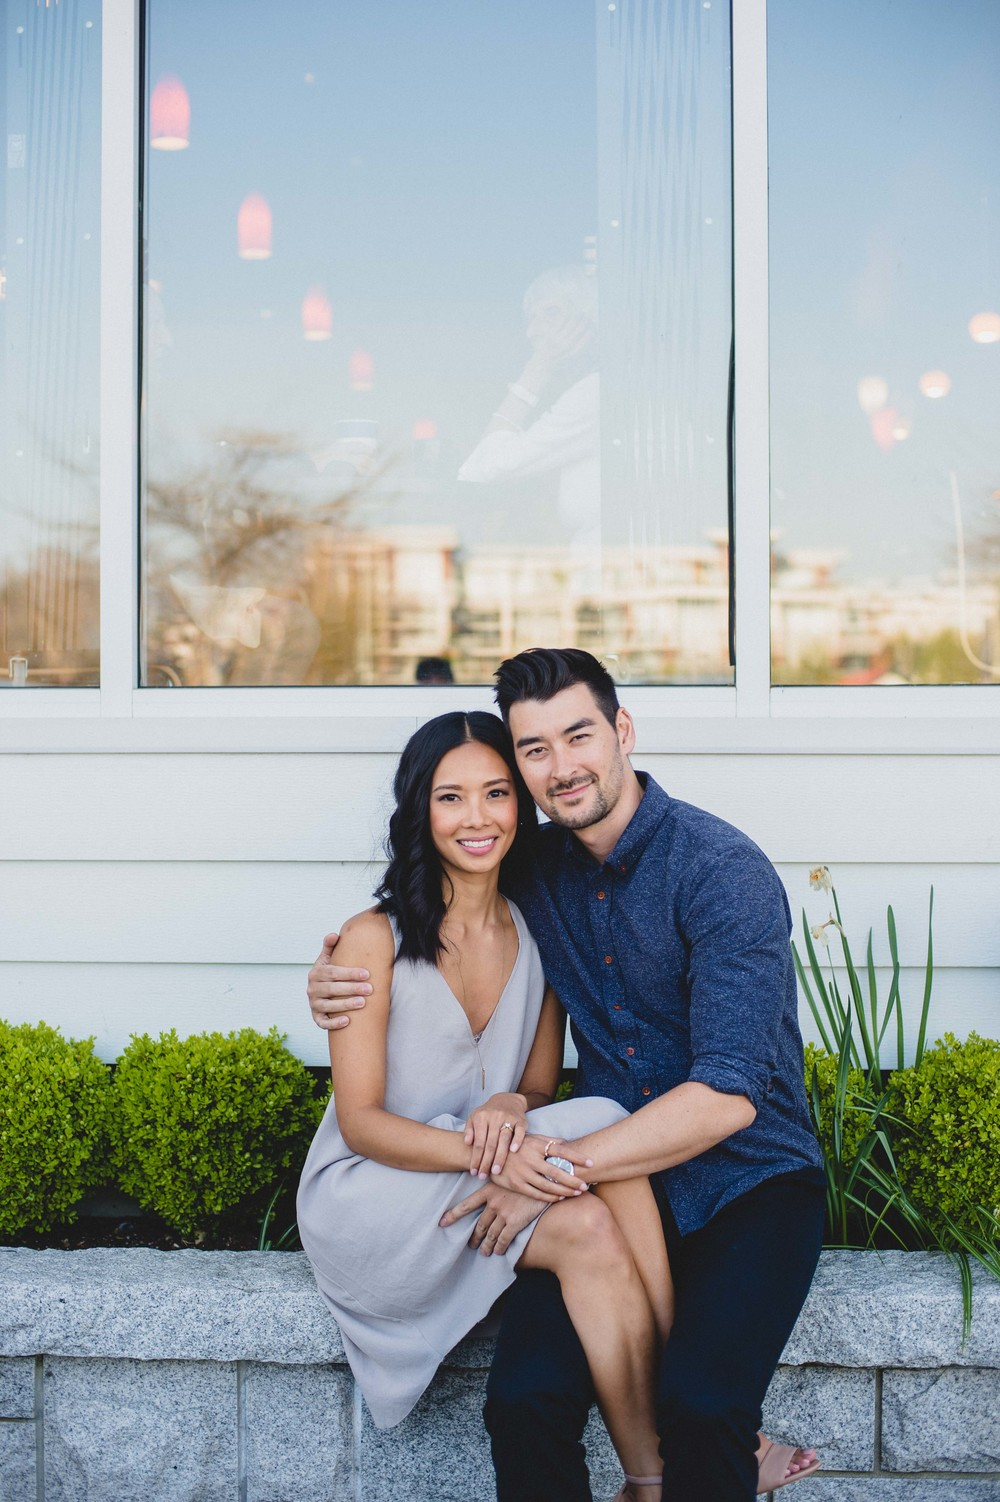 Vaccouver Steveston engagement photography Edward Lai Photography-1.jpg